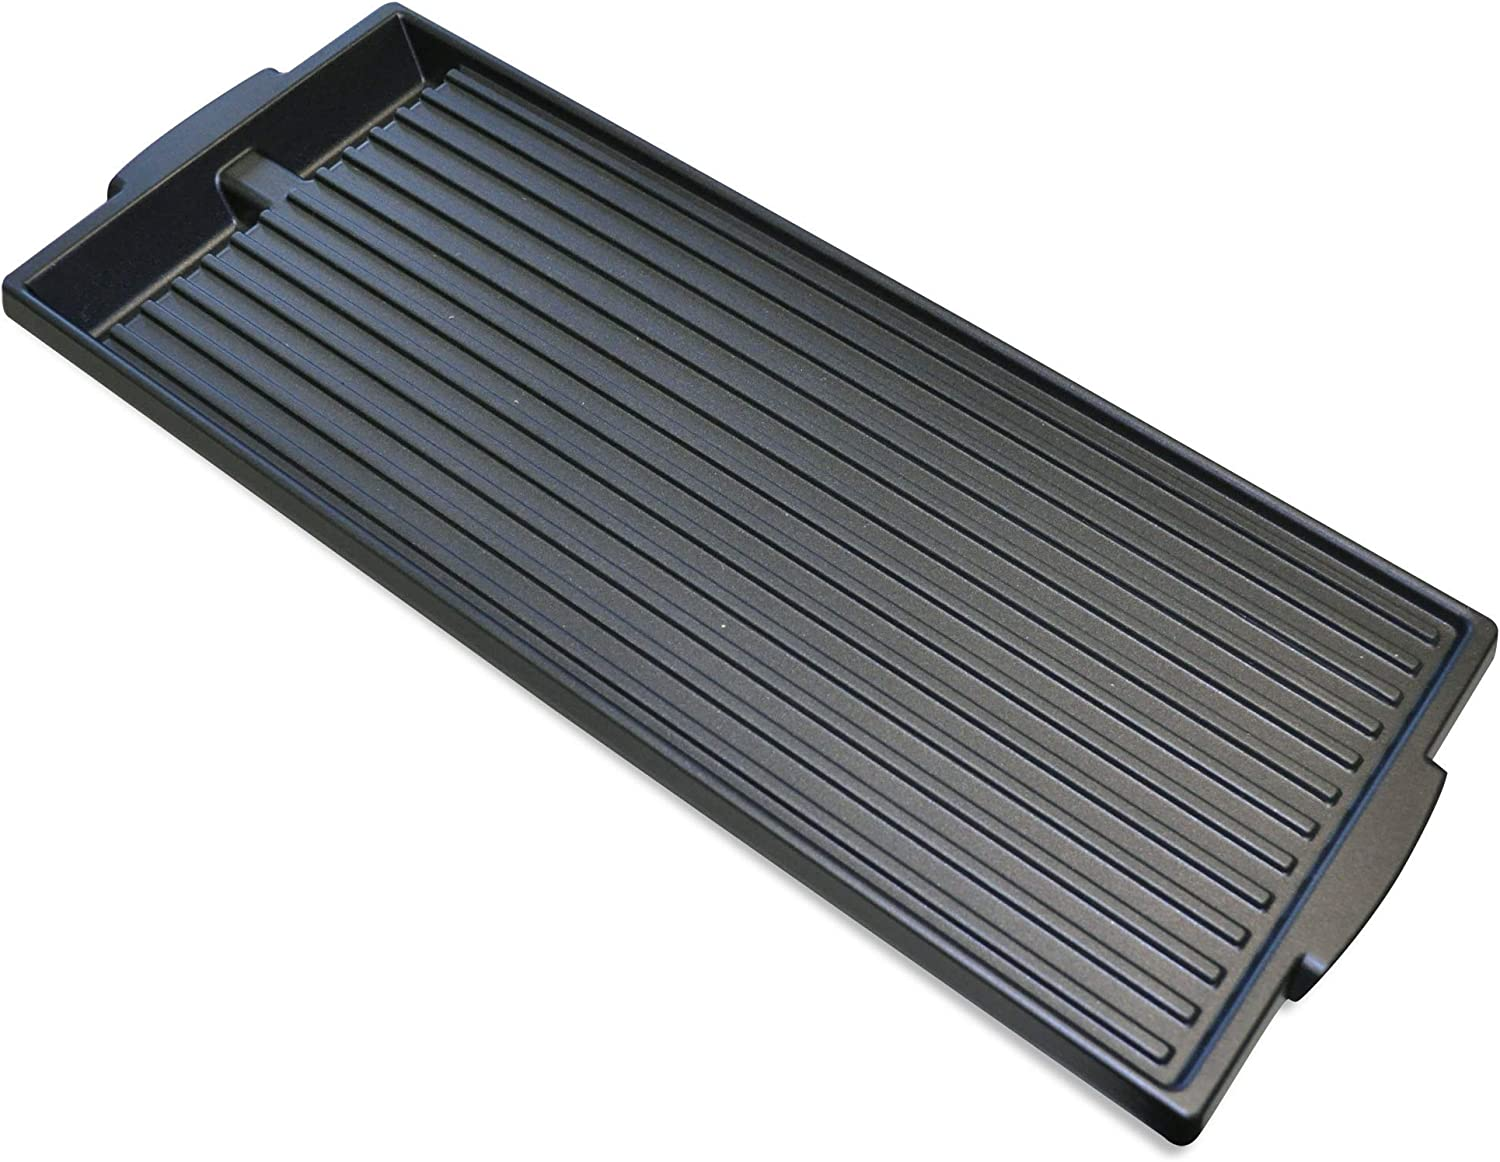 Whirlpool W10432545 Cooktop Grill Grate